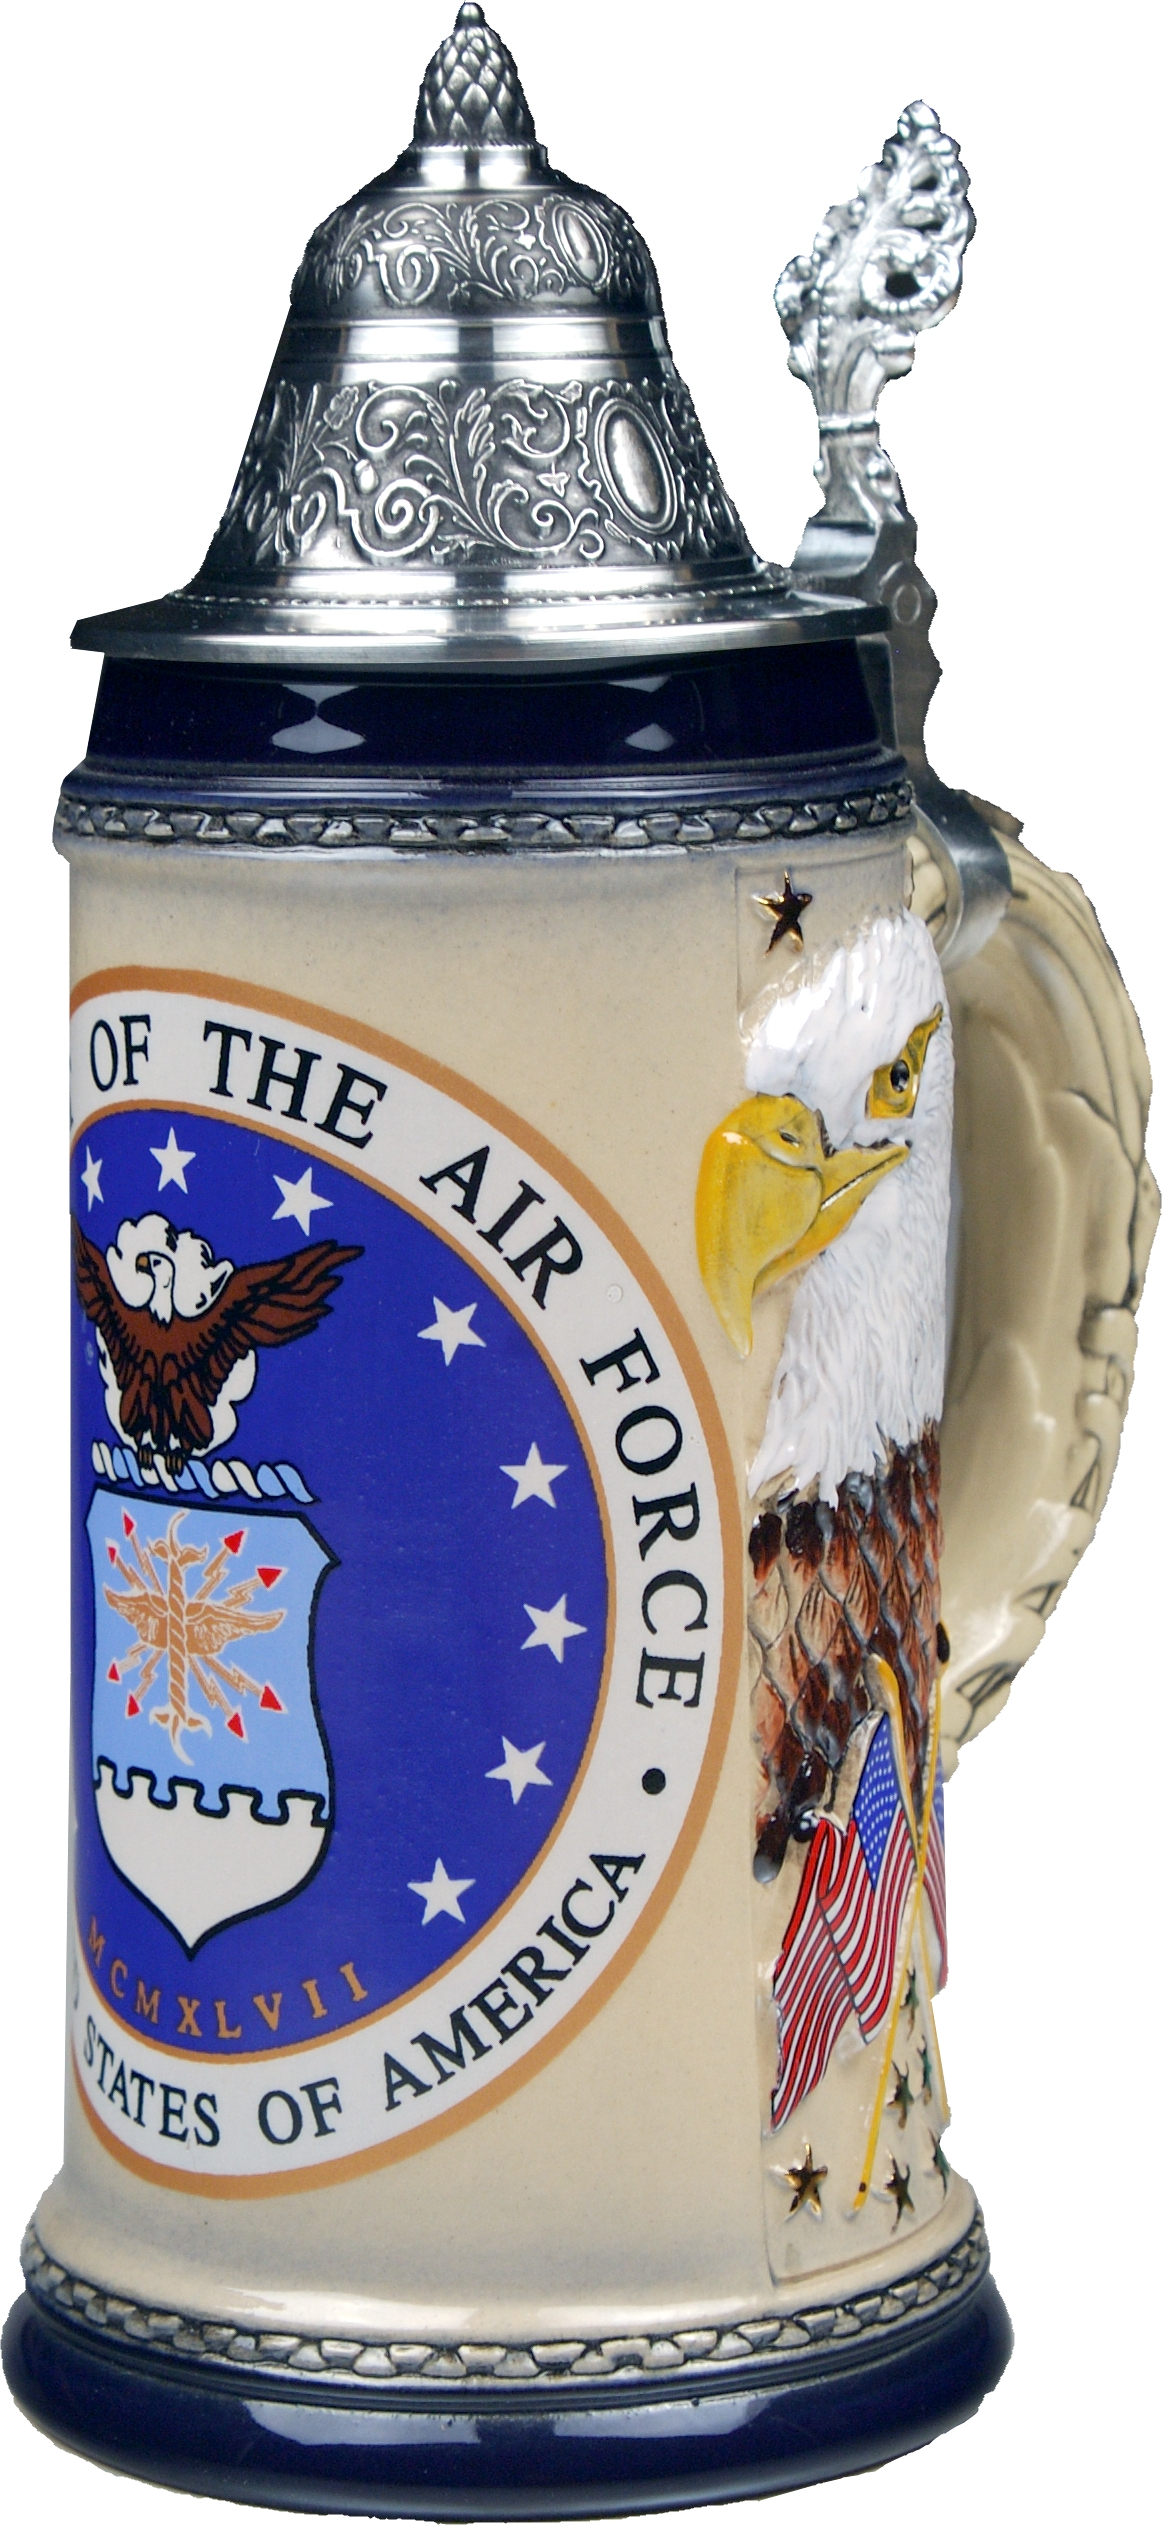 Beer Stein by King - US Air Force Coat of Arms Relief Authentic German Beer Stein 0.75l Limited